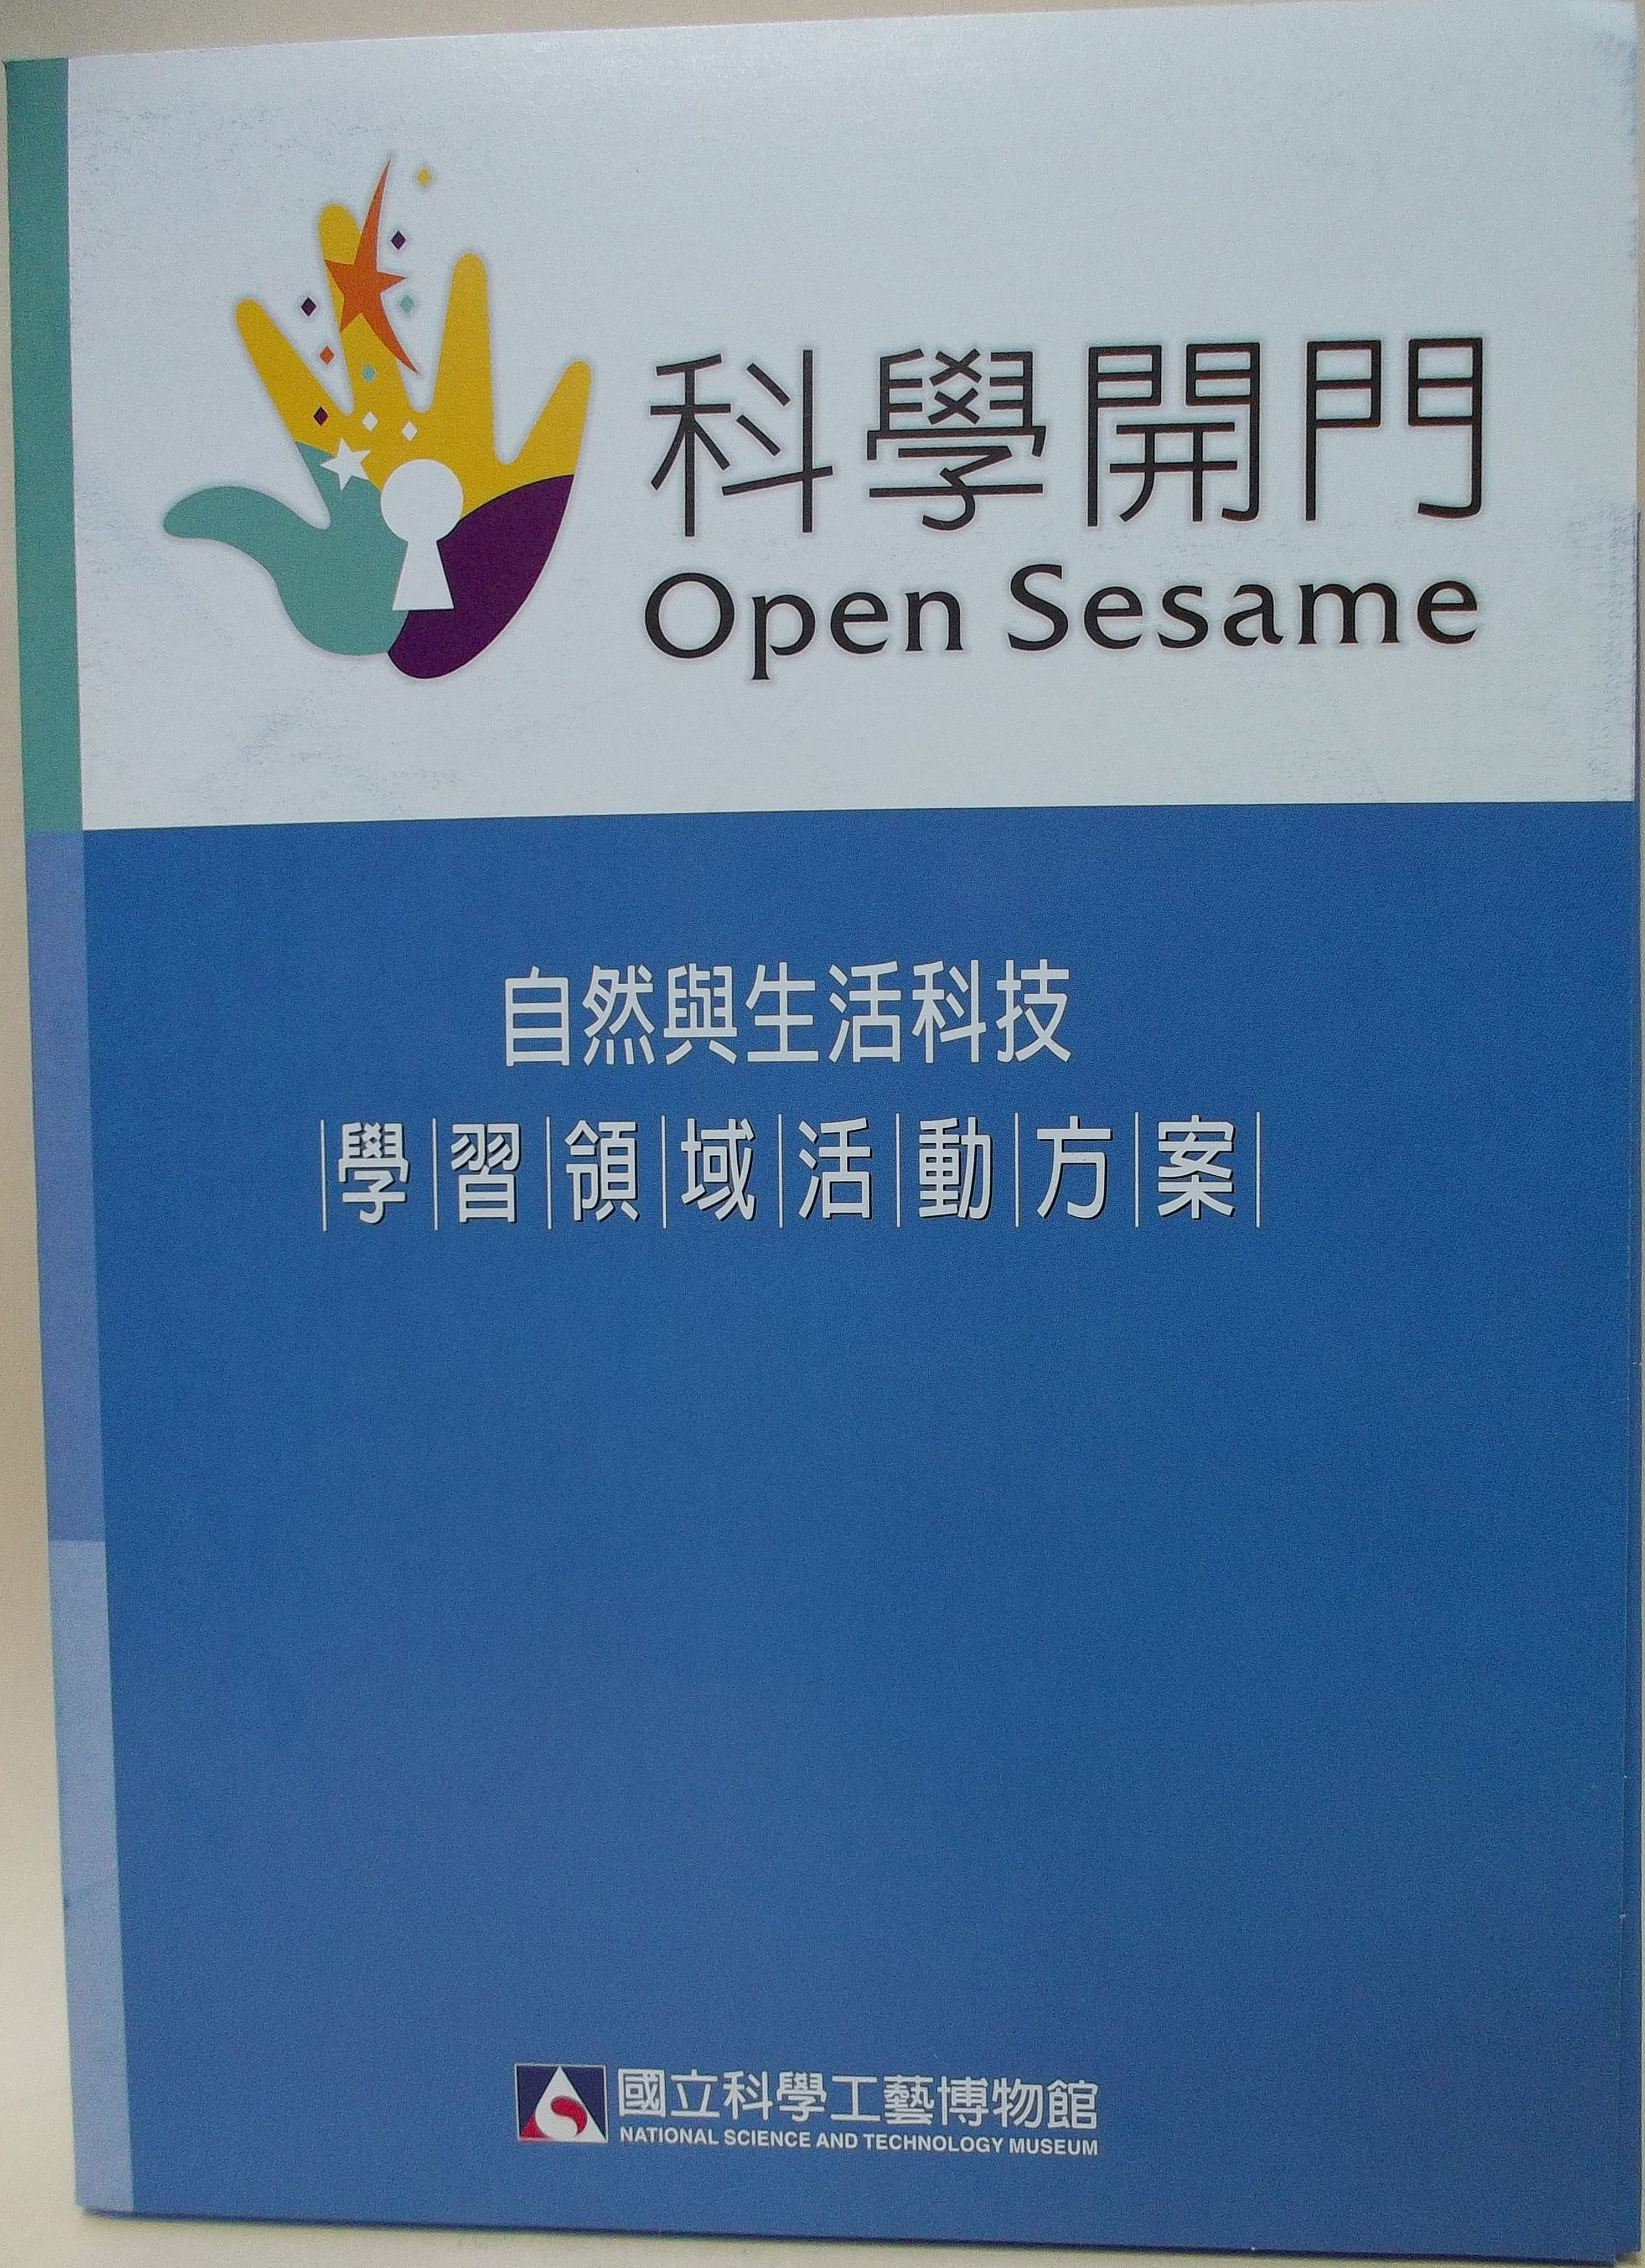 Open Sesame: Activities for Learning of Natural and Life Technology Sciences